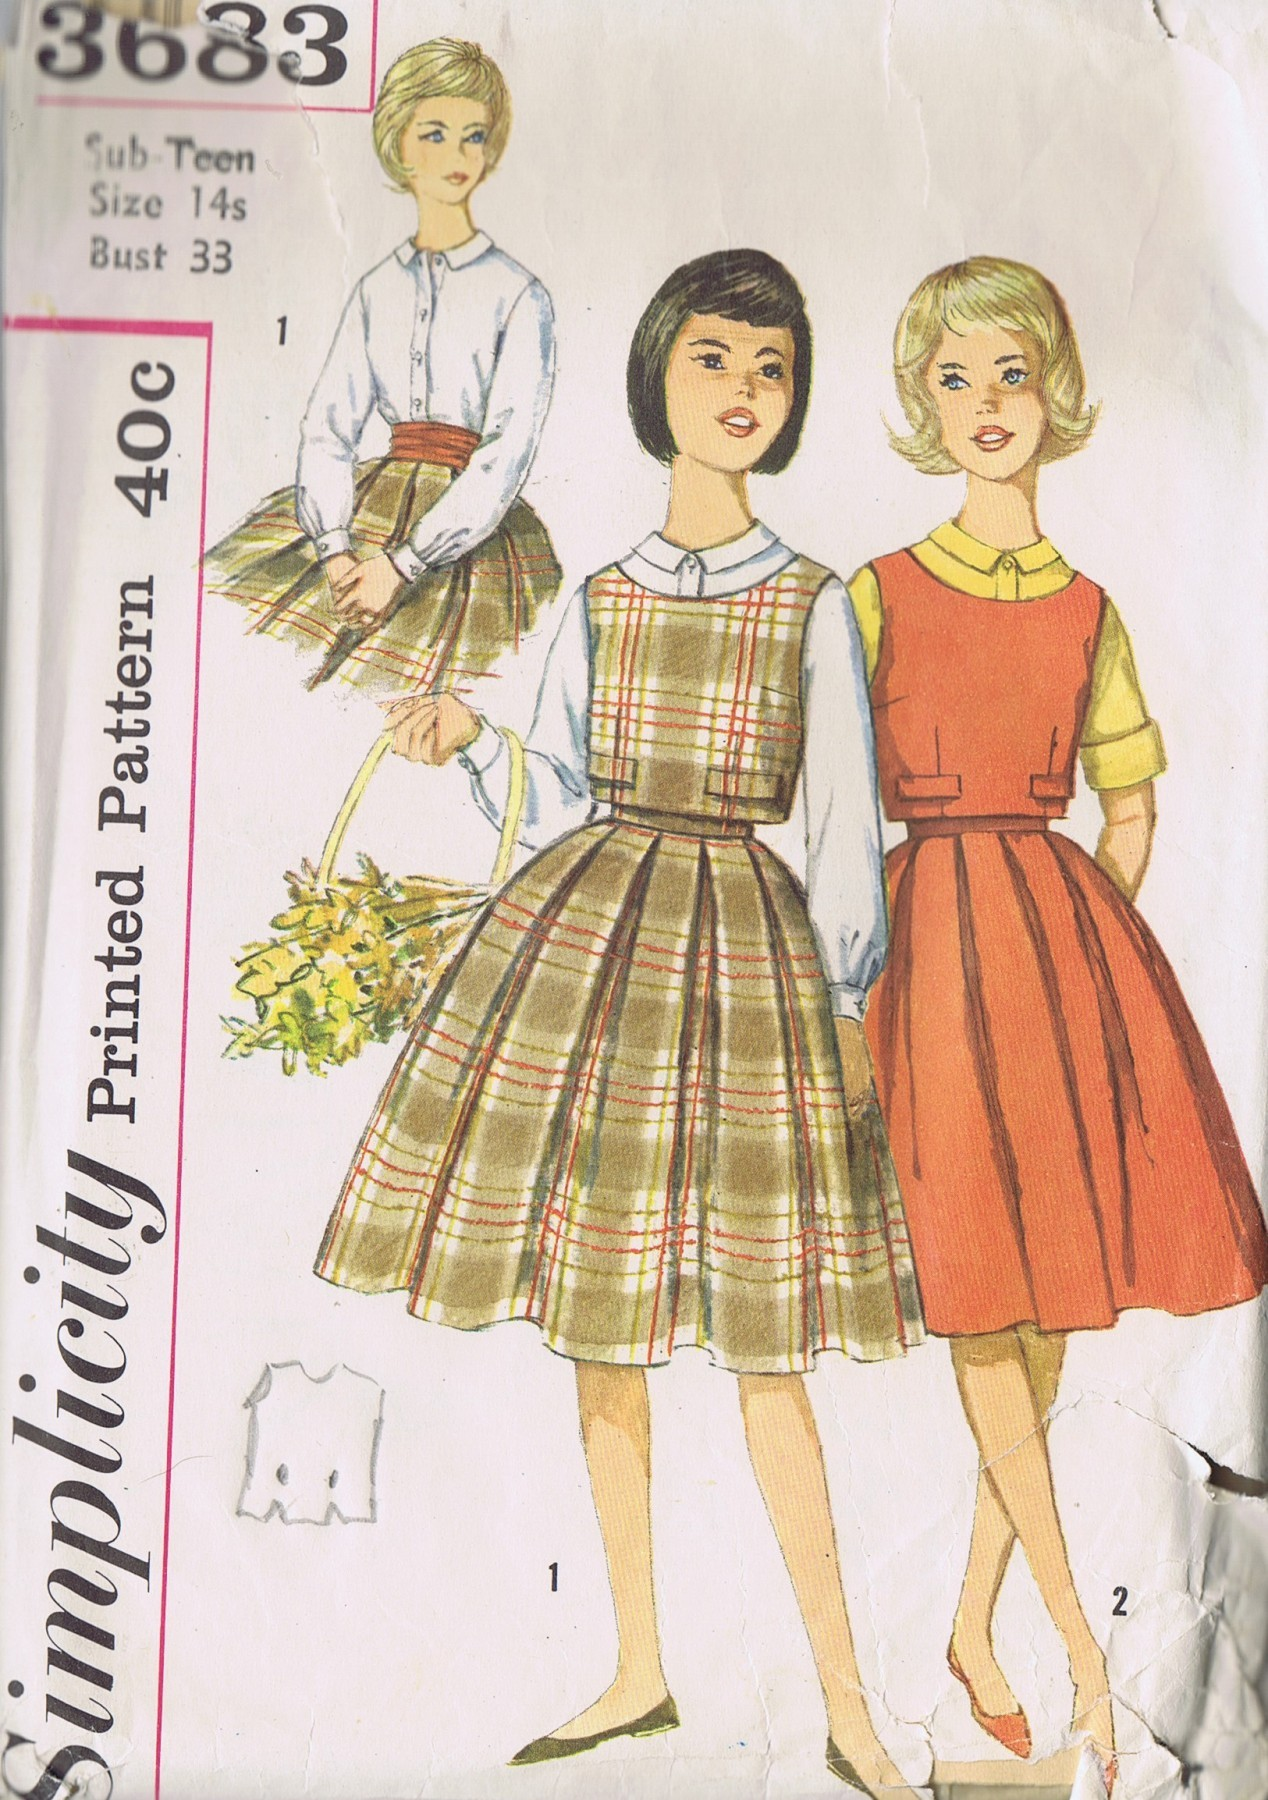 Simplicity 3683 Sewing Pattern Girls Skirt Blouse Top Bust 33 Inches UNCUT